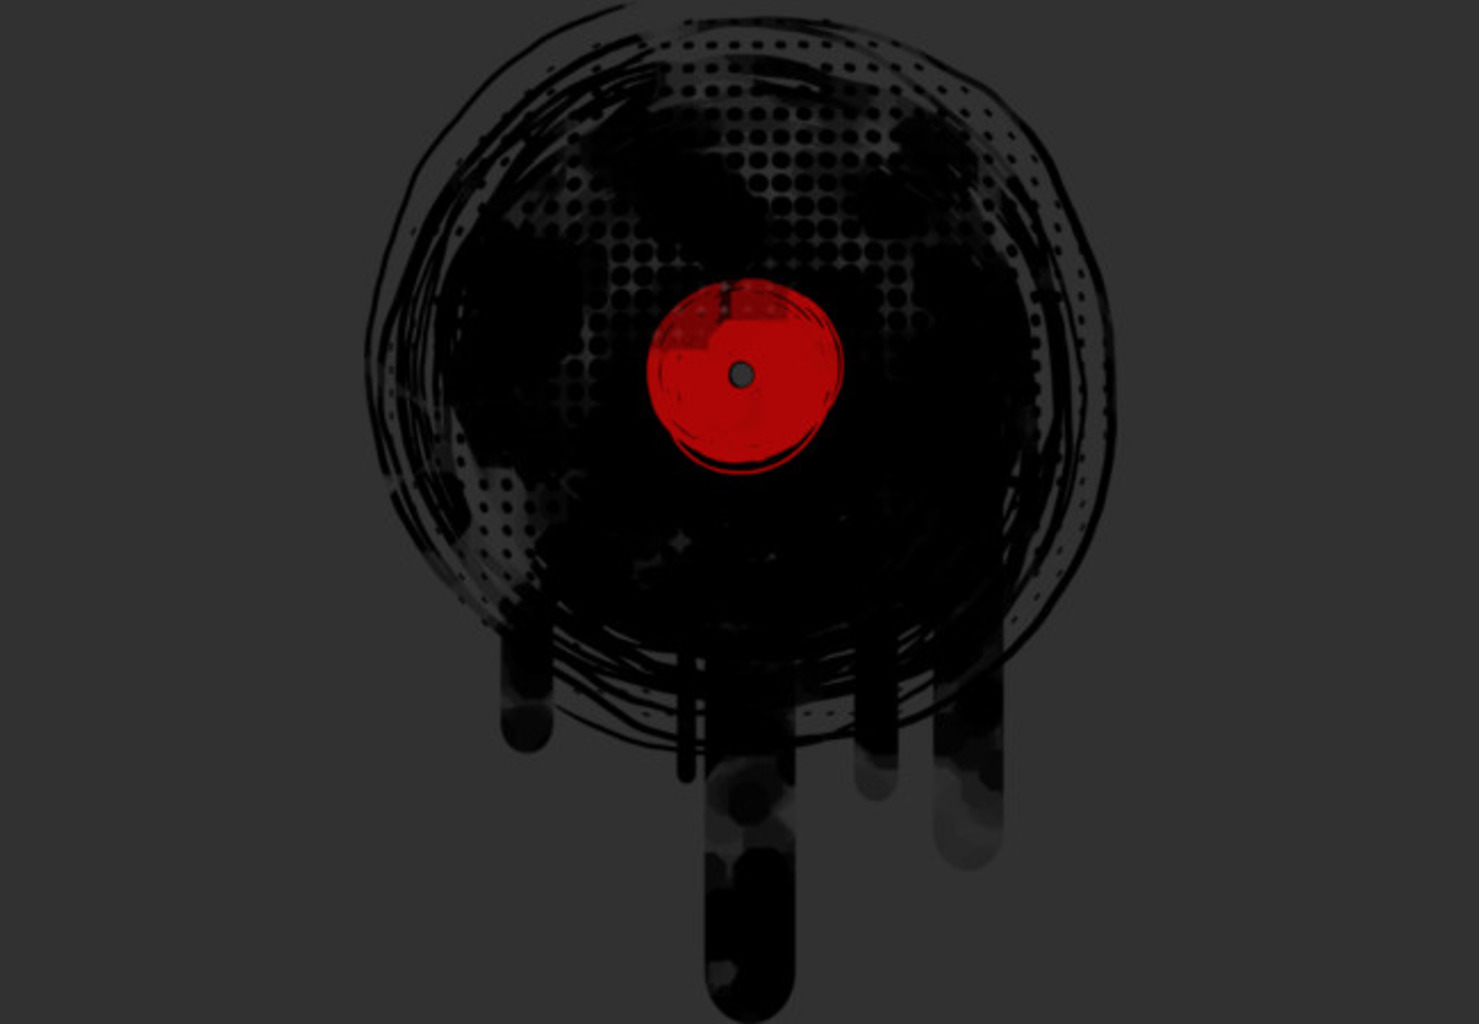 Design by Humans: Melting Vinyl Record Dj Retro Music Vintage D